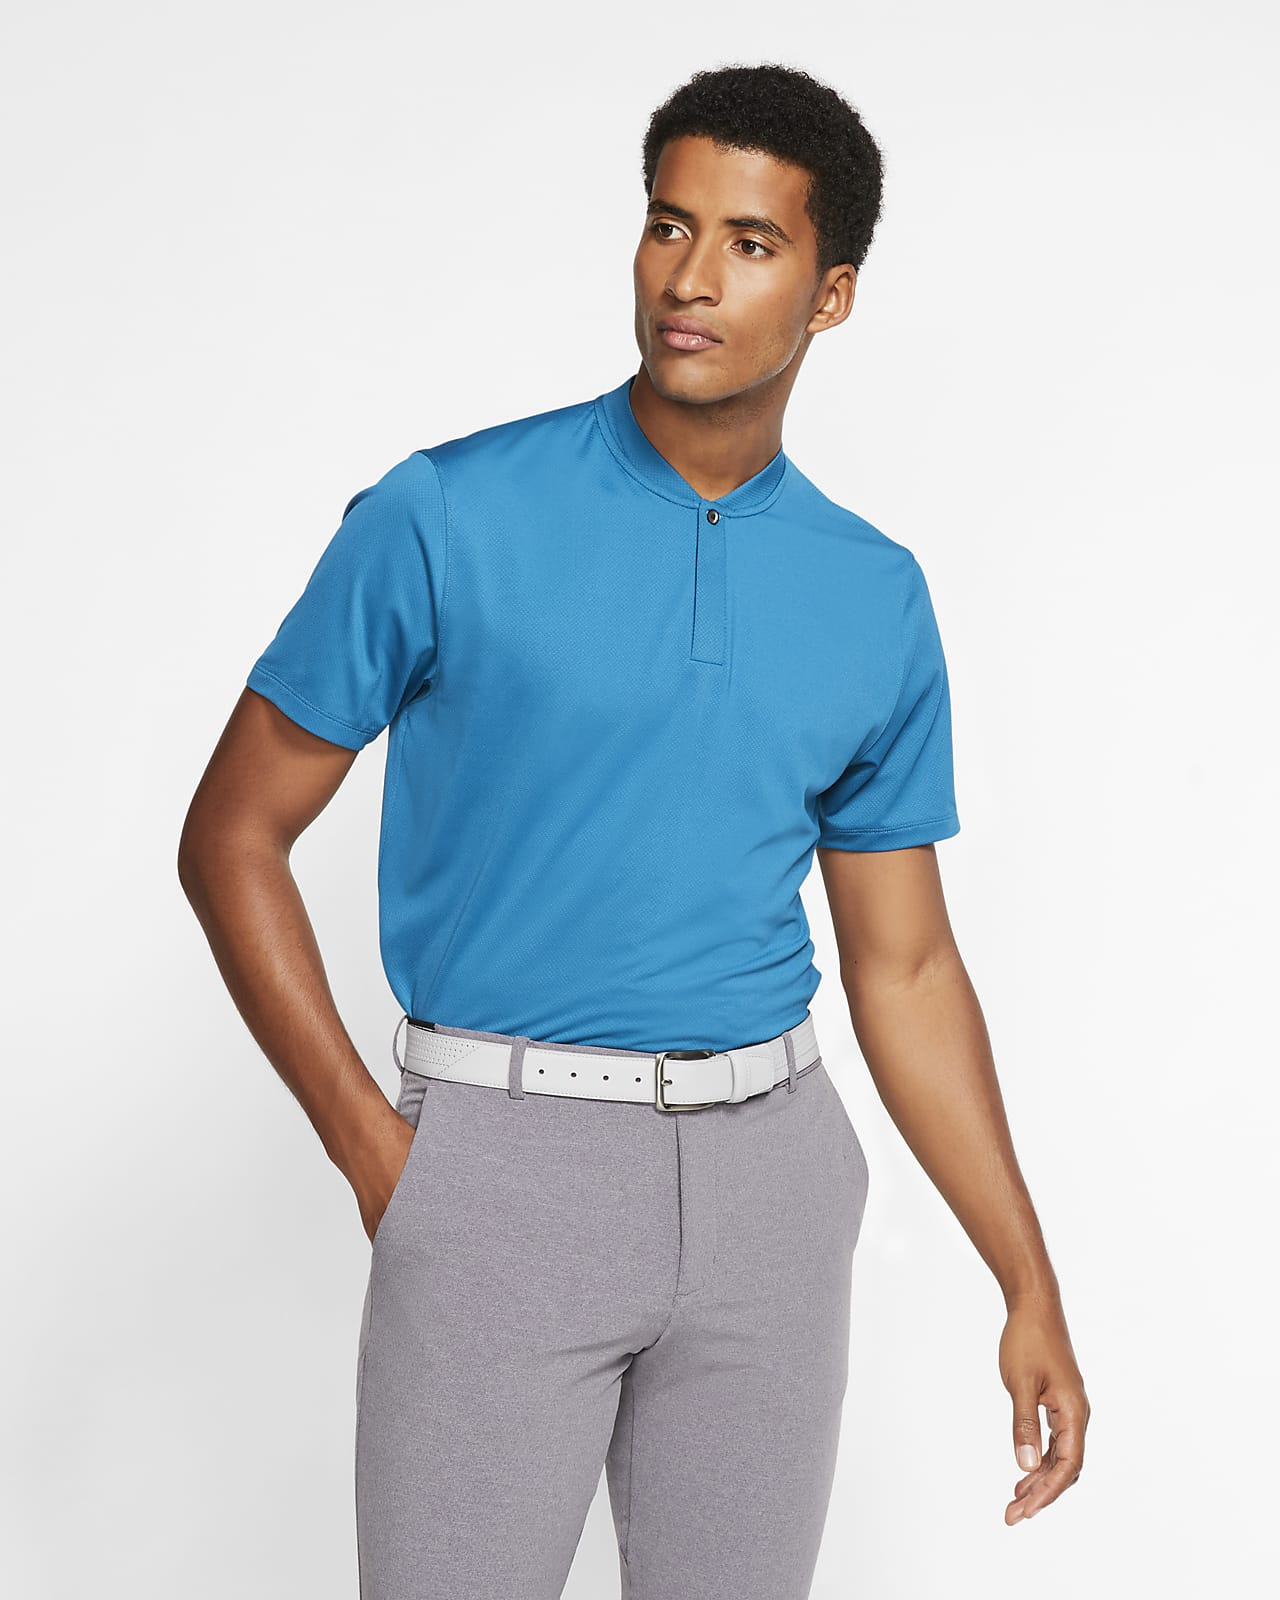 Nike Dri-FIT Tiger Woods Men's Golf Polo